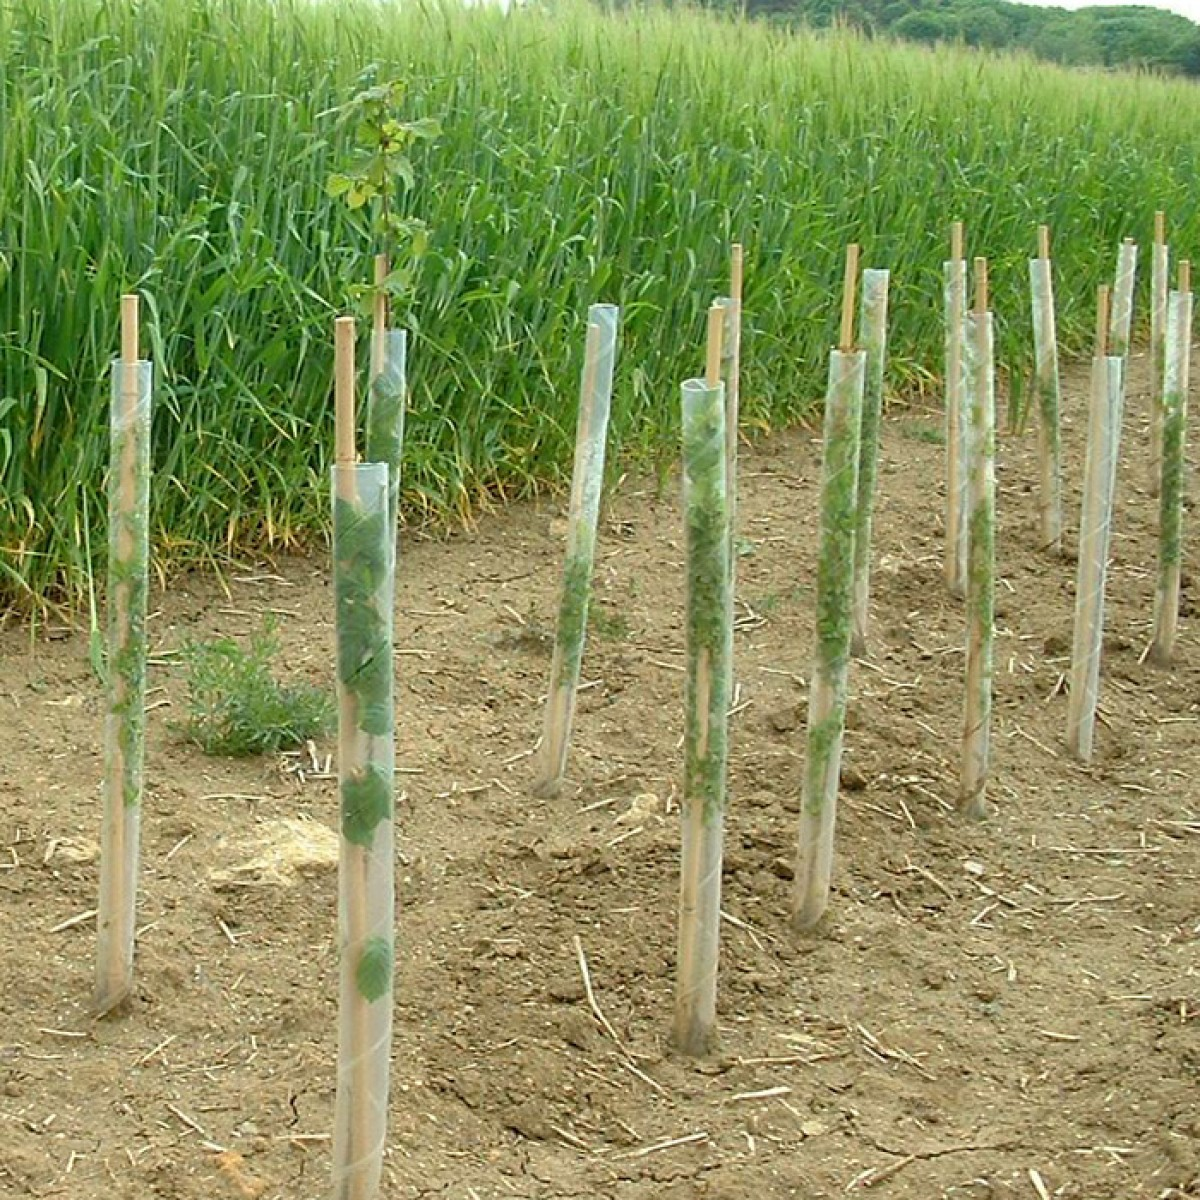 75 Spiral Rabbit Guards plus 75 3ft Bamboo Canes for plant protection